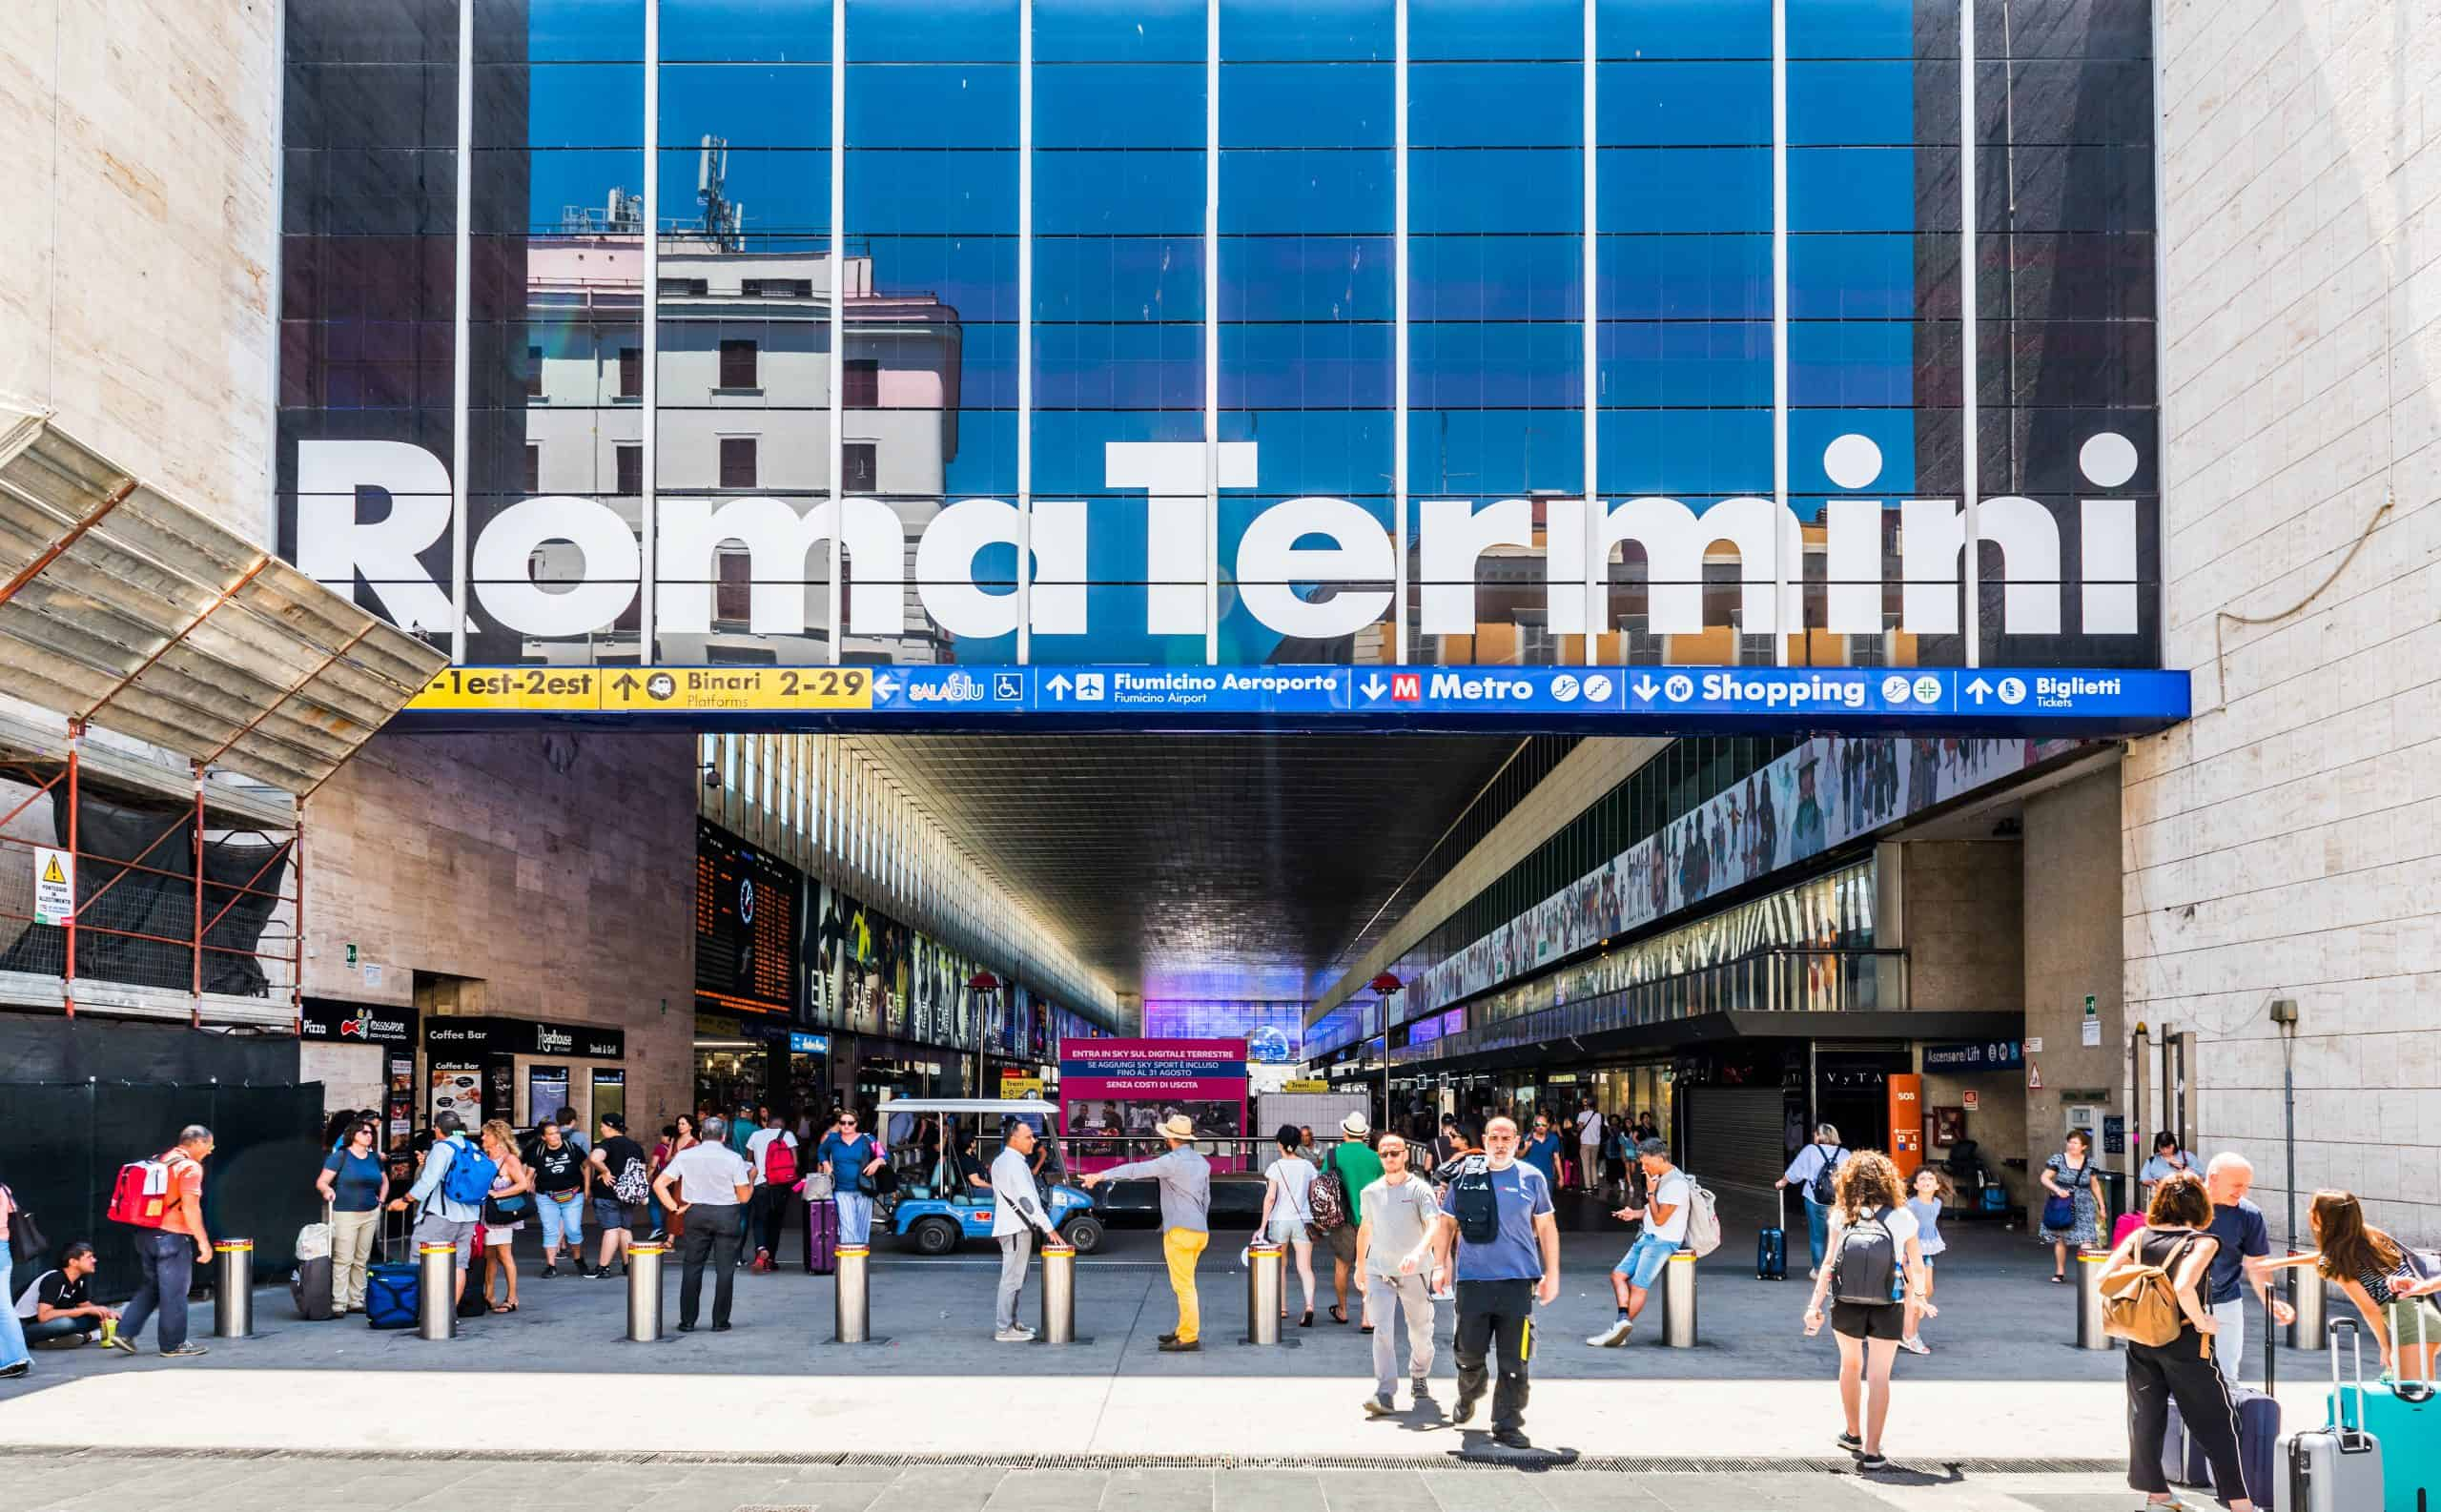 Best Day Trips from Rome, Roma Termini Station